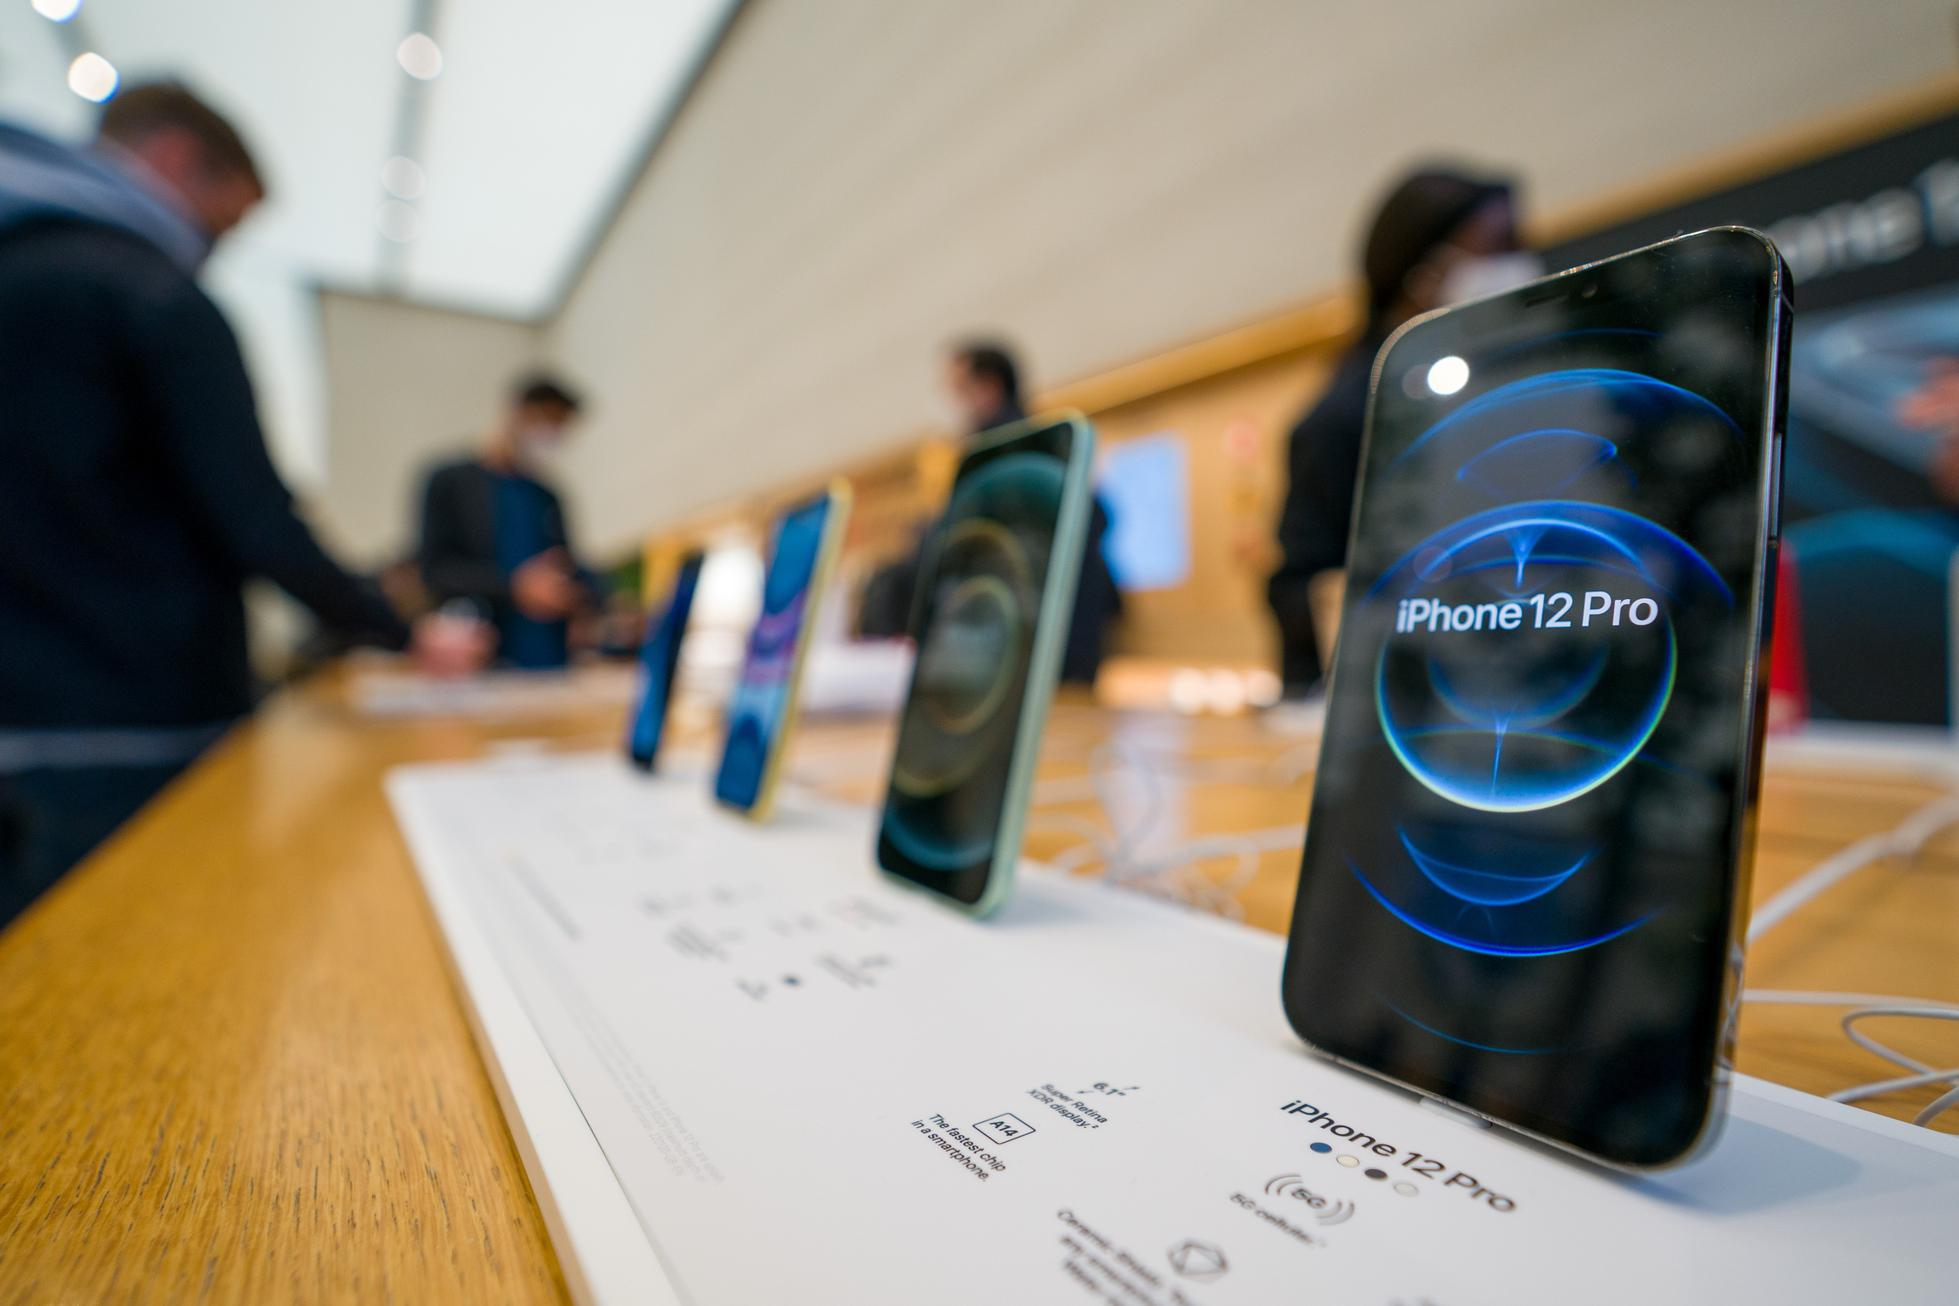 Germany startup Grover plans to launch gadget rentals in the United States.